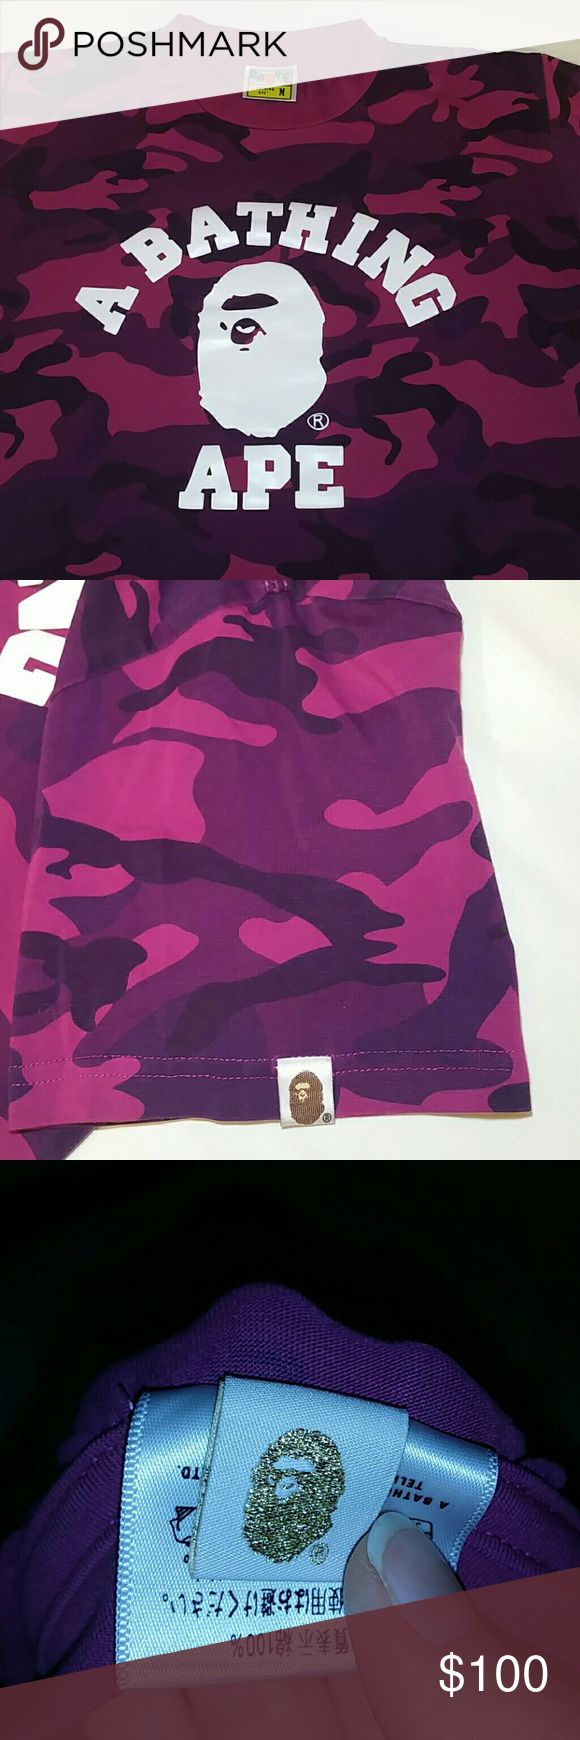 Bape Purple Camo T-shirt Authentic Bathing Ape, this shirt was purchased for me in Japan. The size is a men's medium, fits more like a small, I wear a women's medium and this fits perfectly. This shirt is very well worn, which reflects in the price. There is a slight scratch on the ape face, as shown in the last picture. Any other imperfections are due to the use over the last few years, still an amazing piece nontheless. Price is firm. Bape Shirts